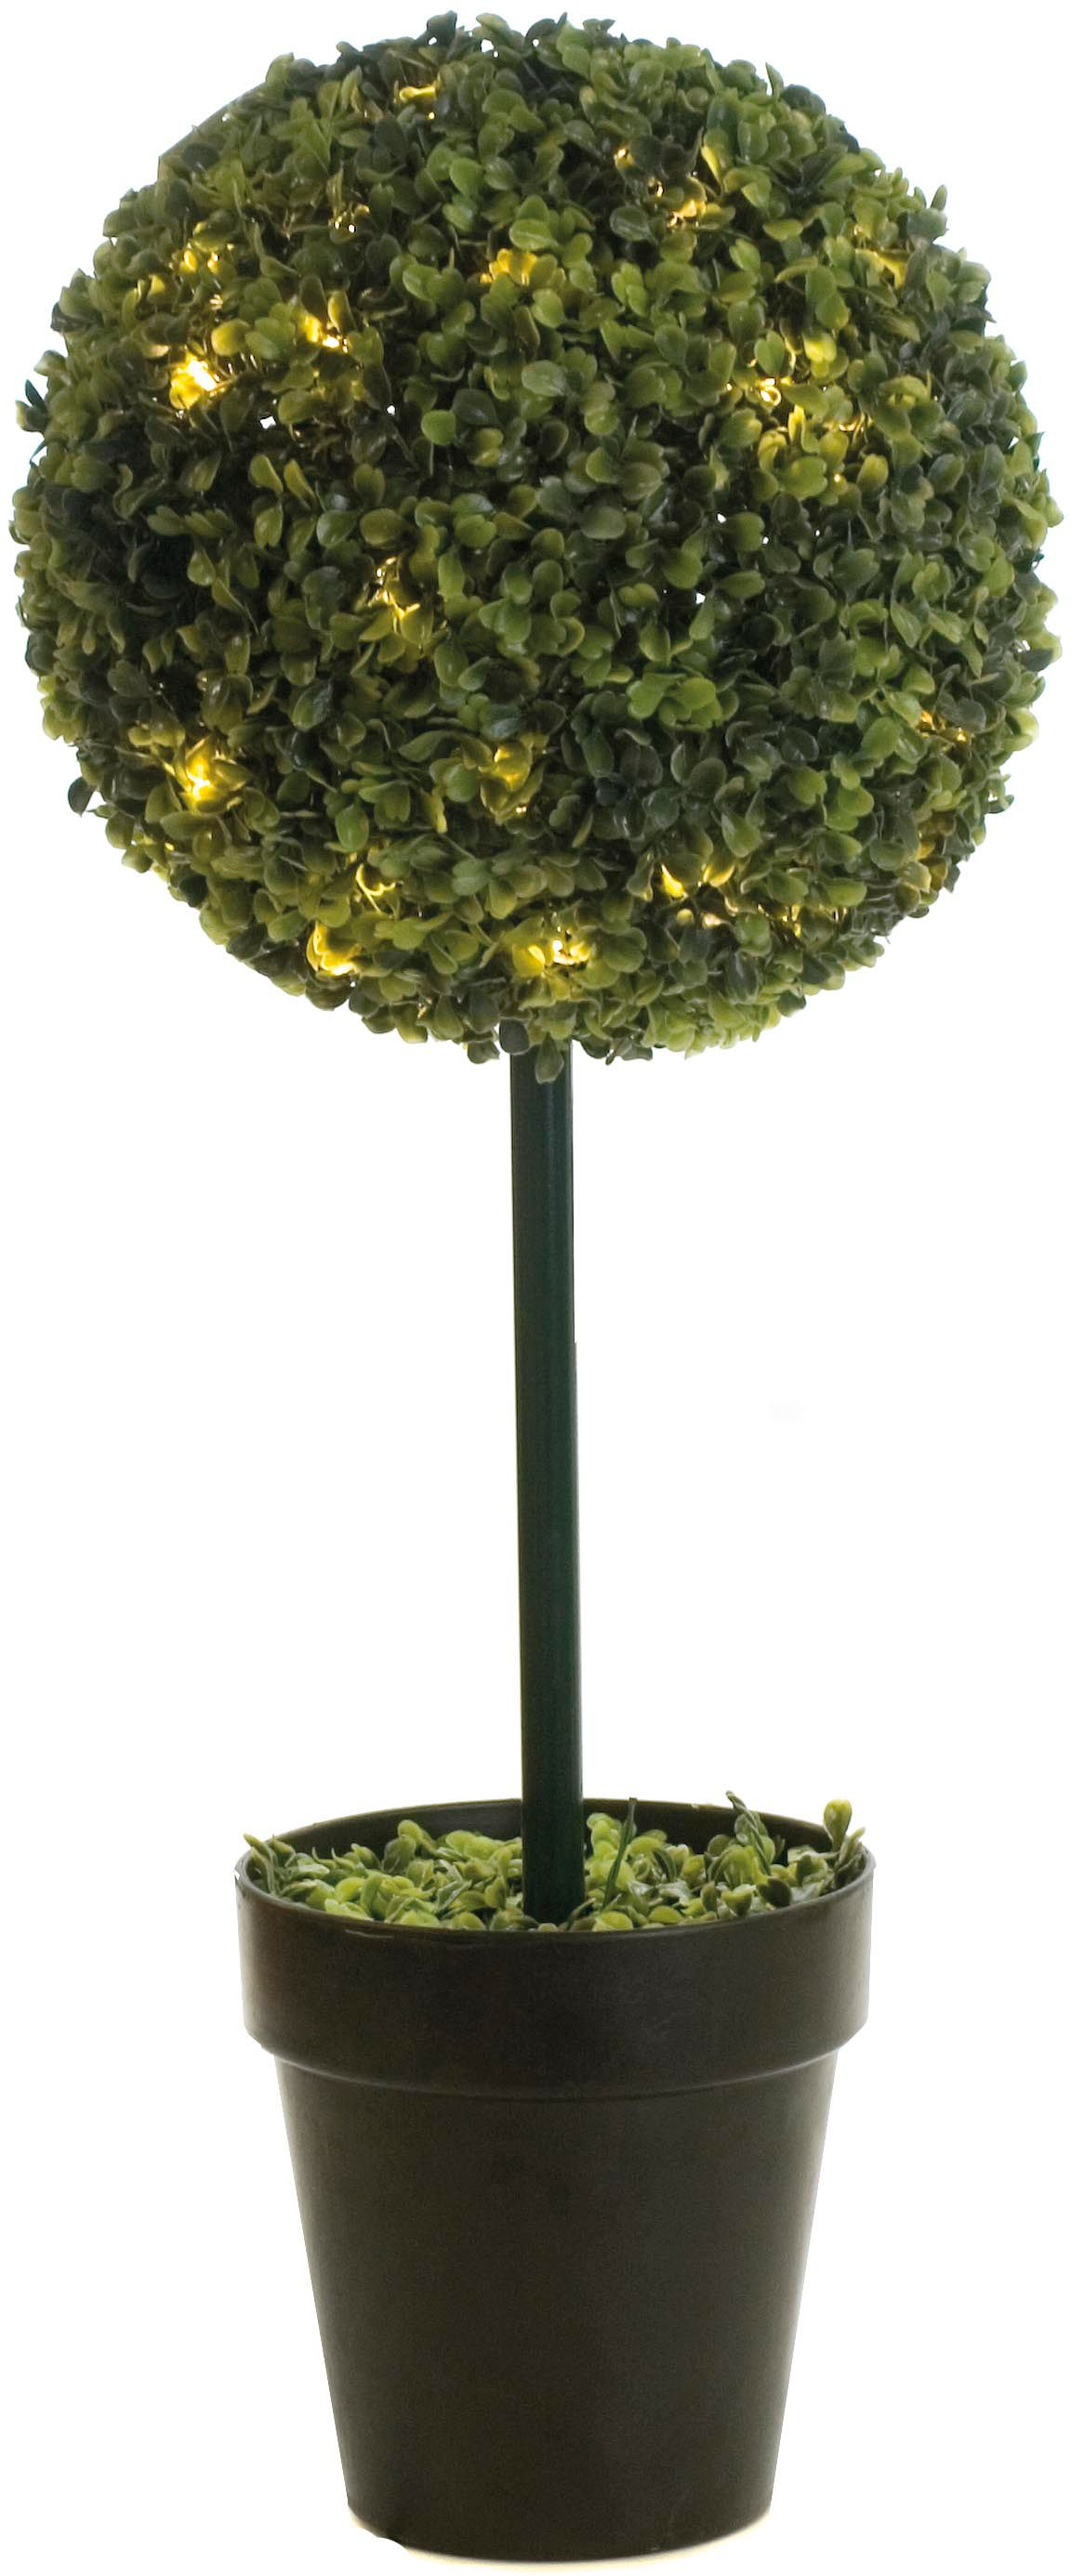 Linea Ball shaped topiary tree with lights, 80cm